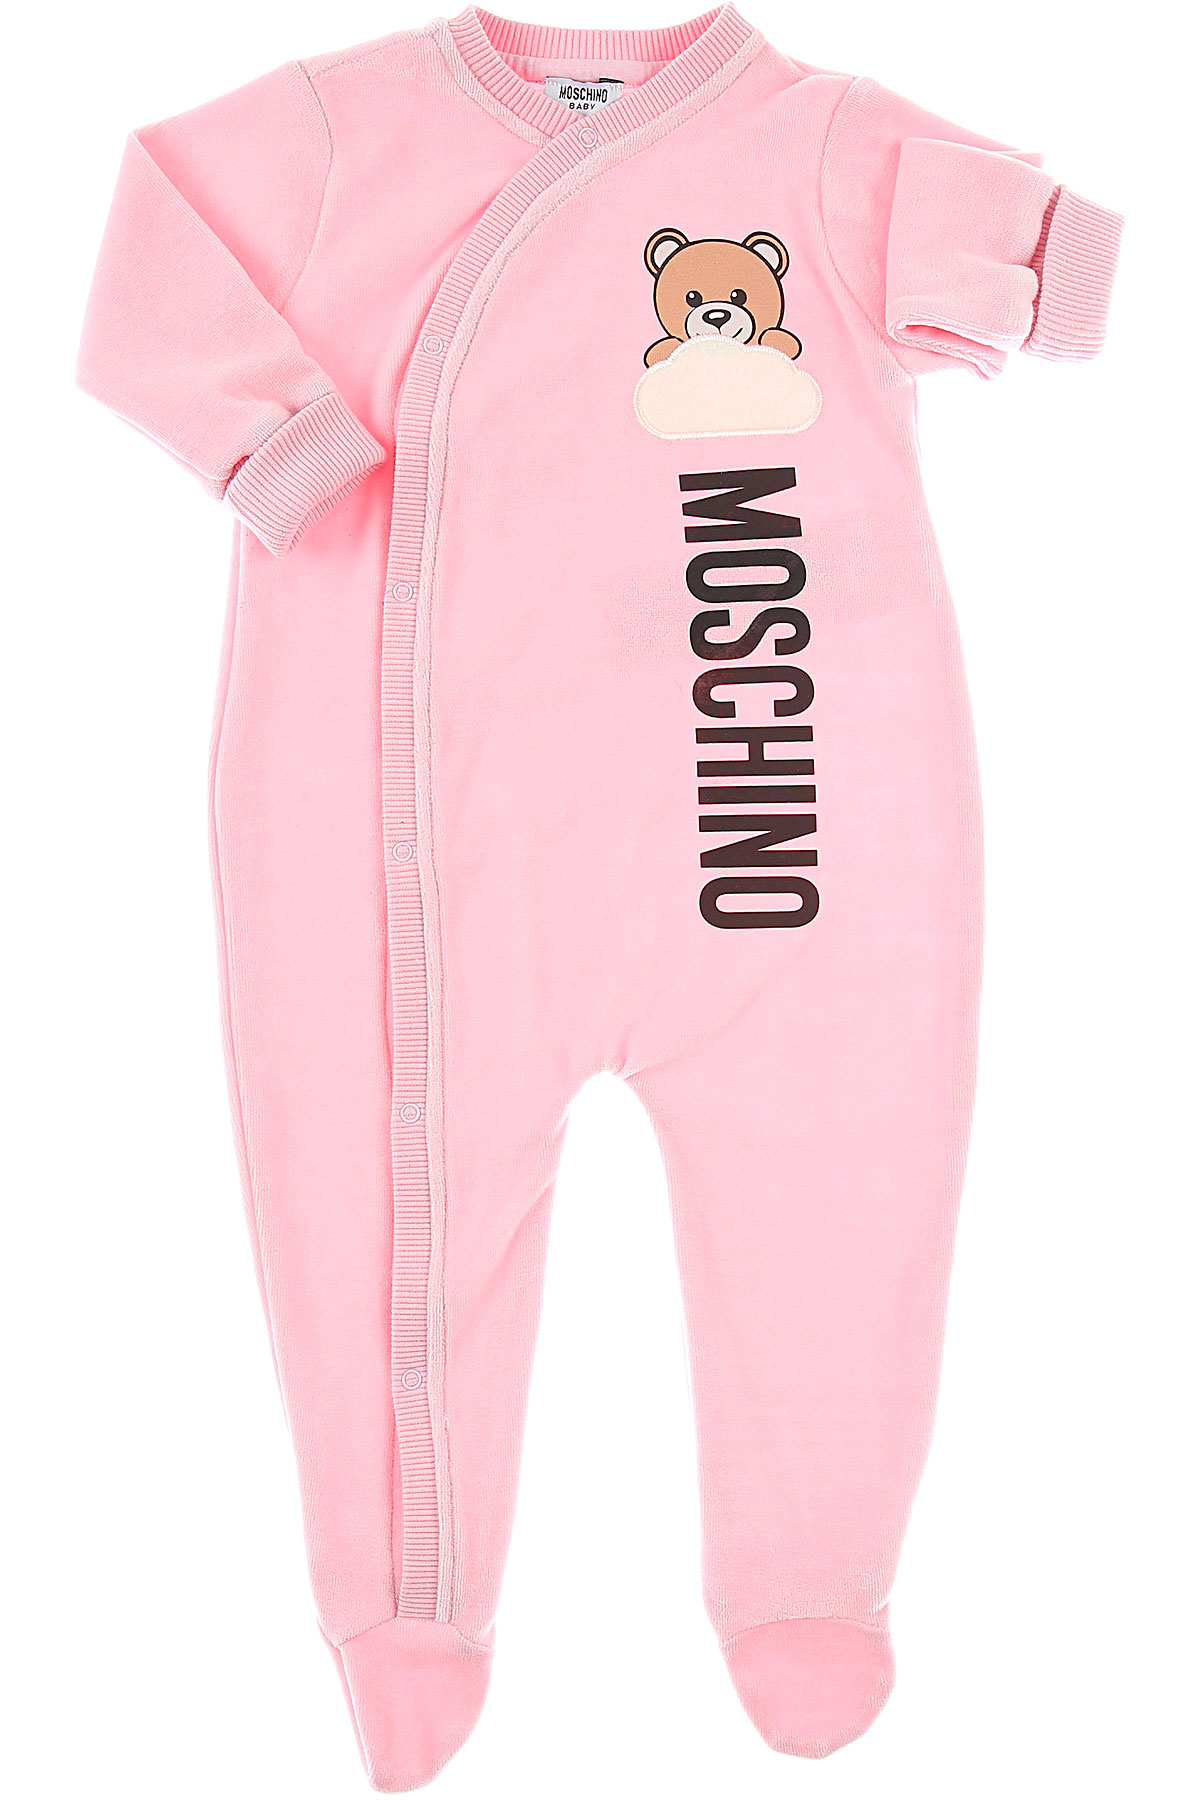 Image of Moschino Baby Bodysuits & Onesies for Girls, Light Pink, Cotton, 2017, 6M 9M